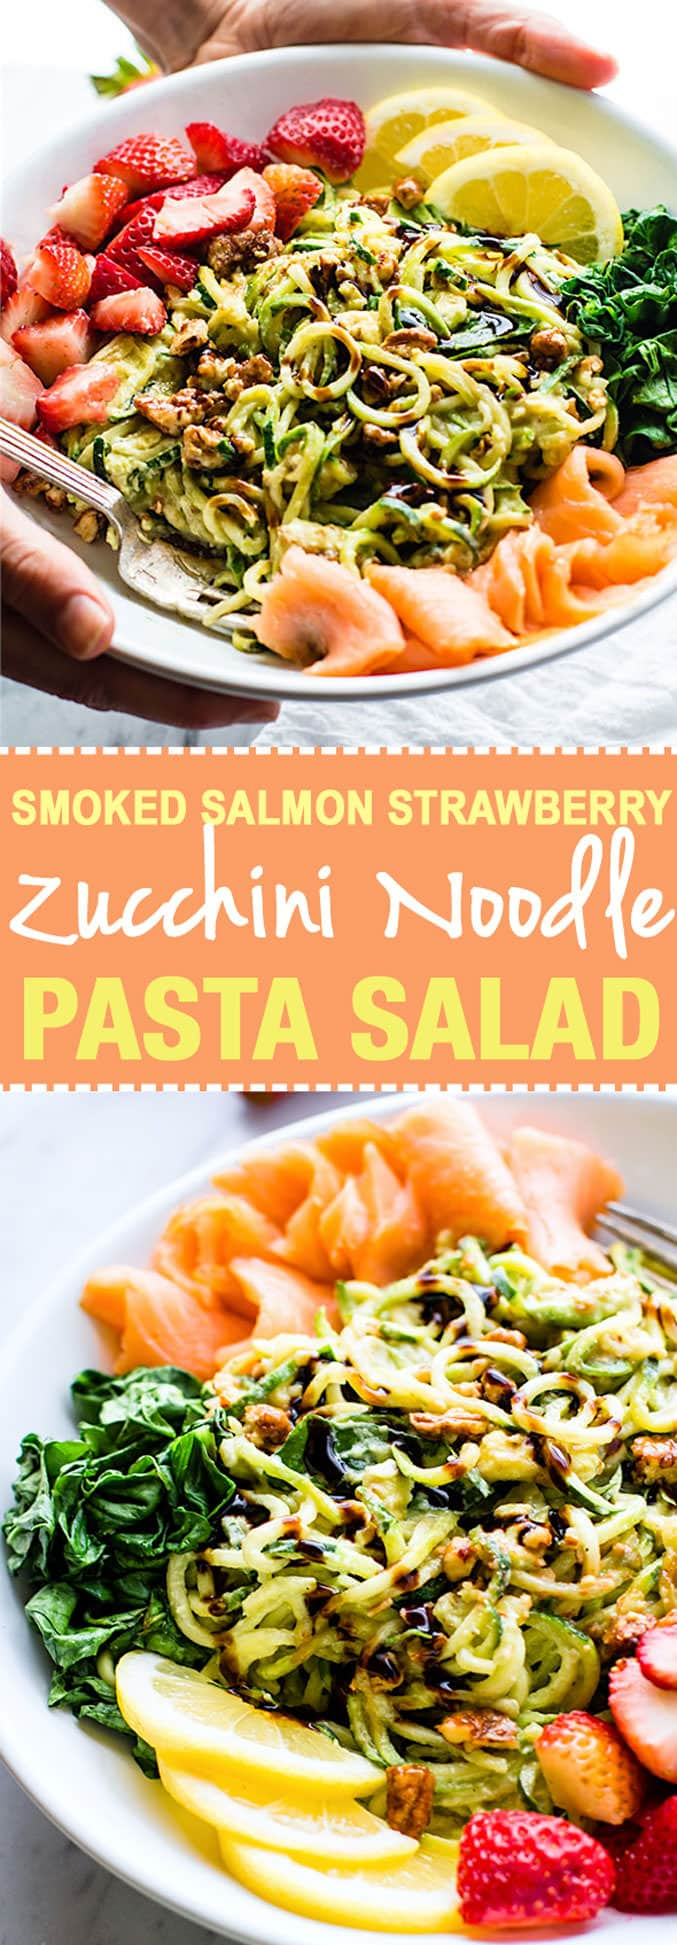 Smoked Salmon and Strawberry Zucchini Noodle Pasta Salad! A healthy lower carb Zucchini noodle pasta salad with a creamy avocado sauce and paired with the fresh strawberries, spinach, and smoked salmon. This gluten free Salad bowl is perfect for a spring or summer lunch or side dish. Clean ingredients, real food, UNREAL GOOD! @cottercrunch